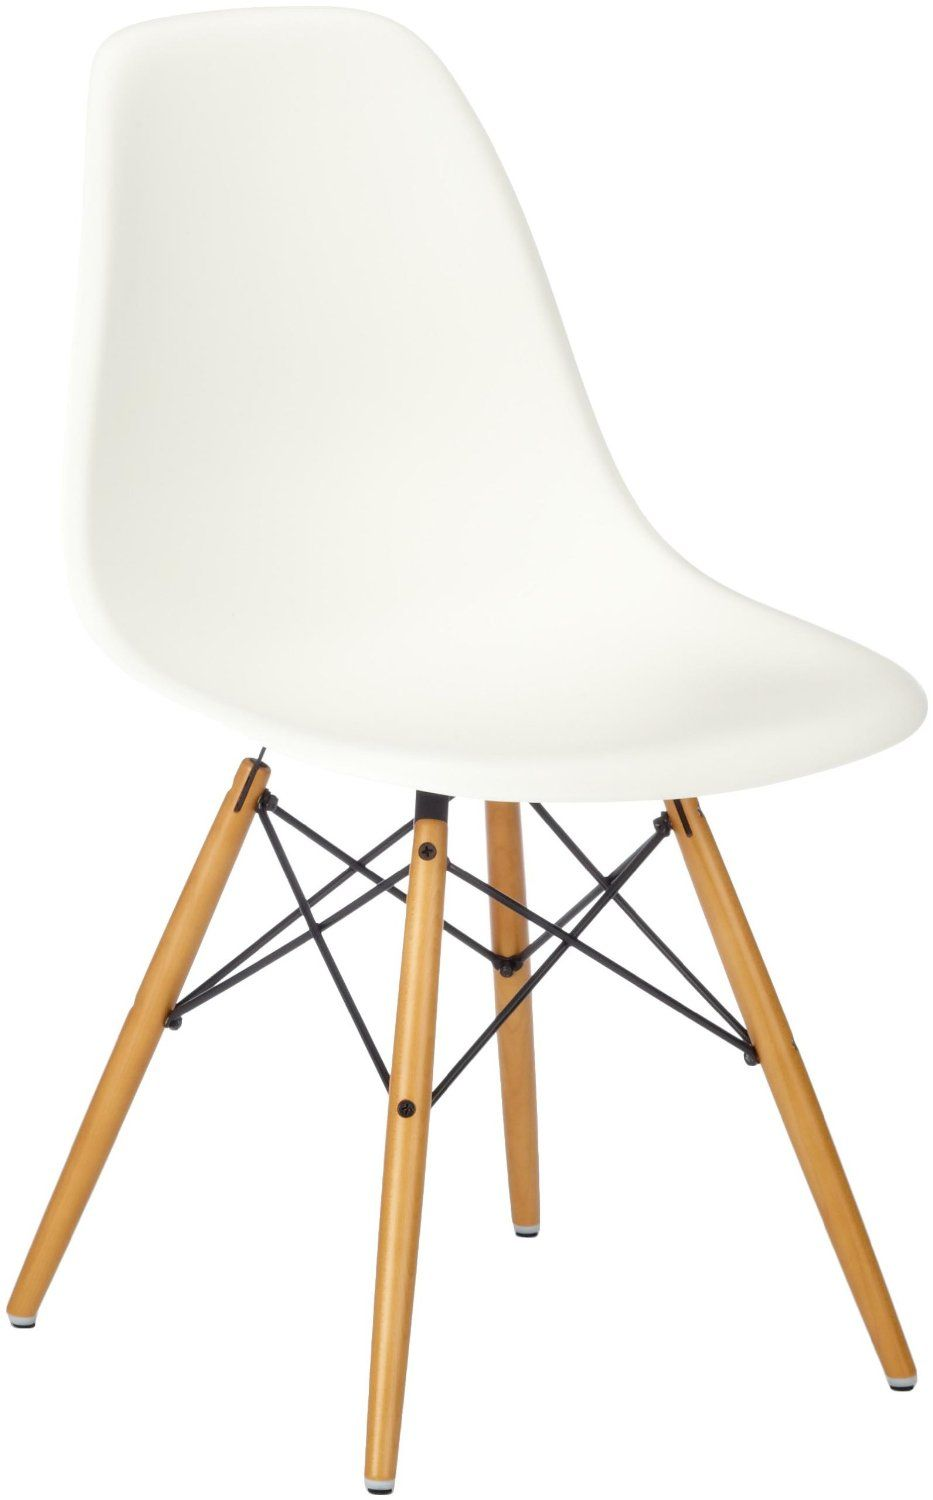 Designer Stuhl Eames vitra eames plastic side chair dsw base maple yellowish white seat